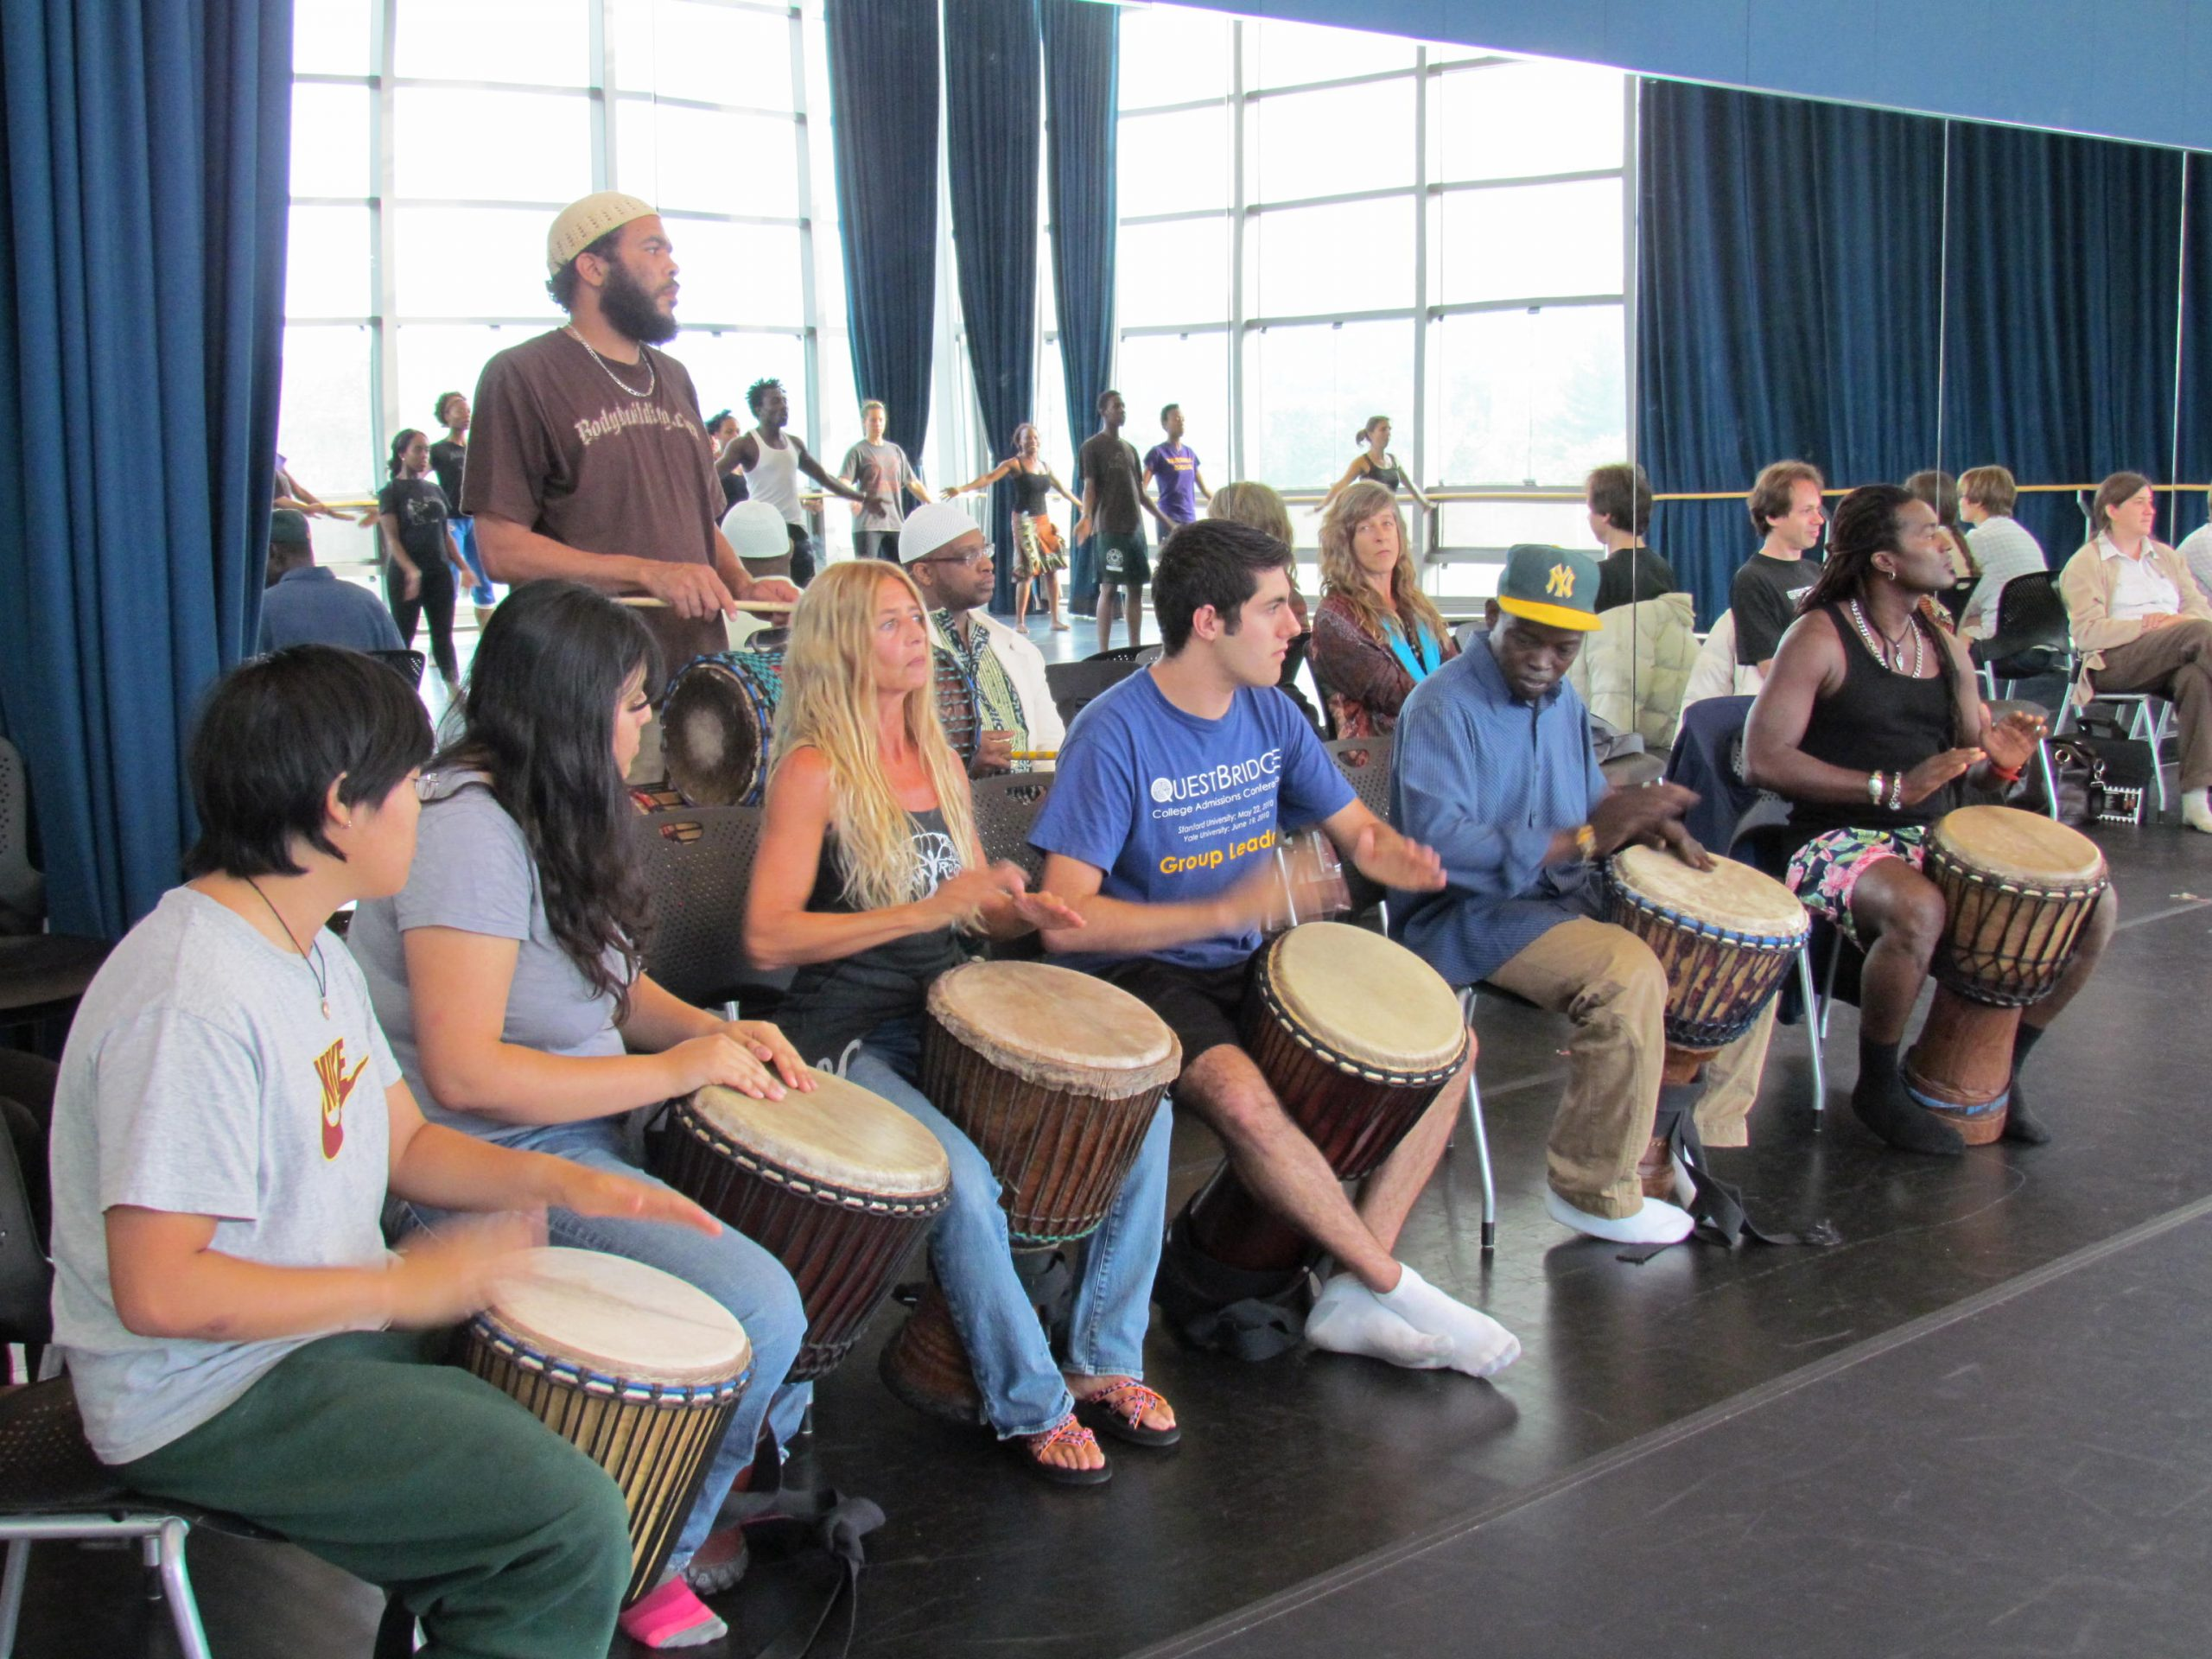 A row of people drumming in front of a mirrored wall